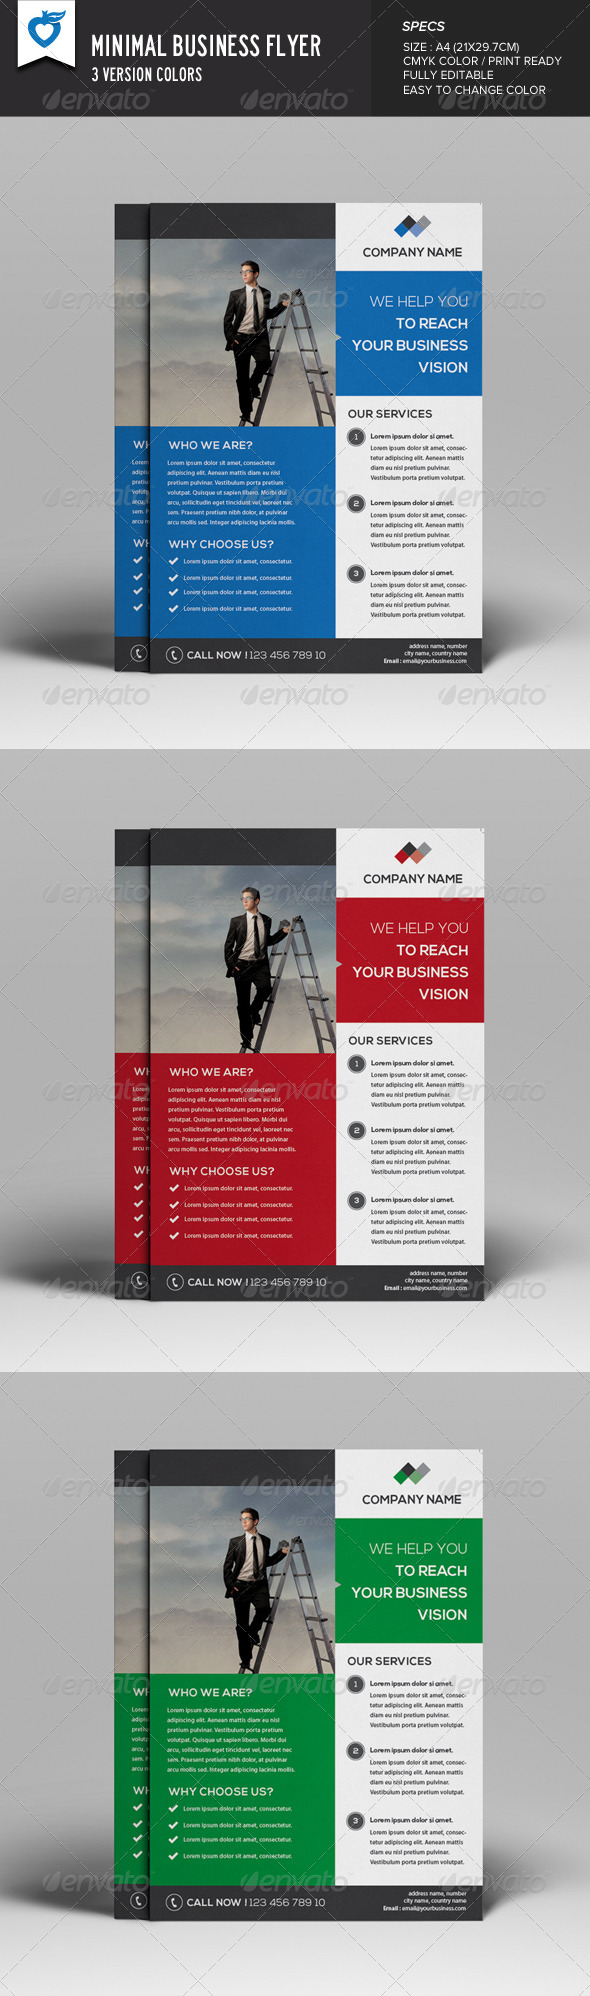 GraphicRiver Minimal Business Flyer 8216101